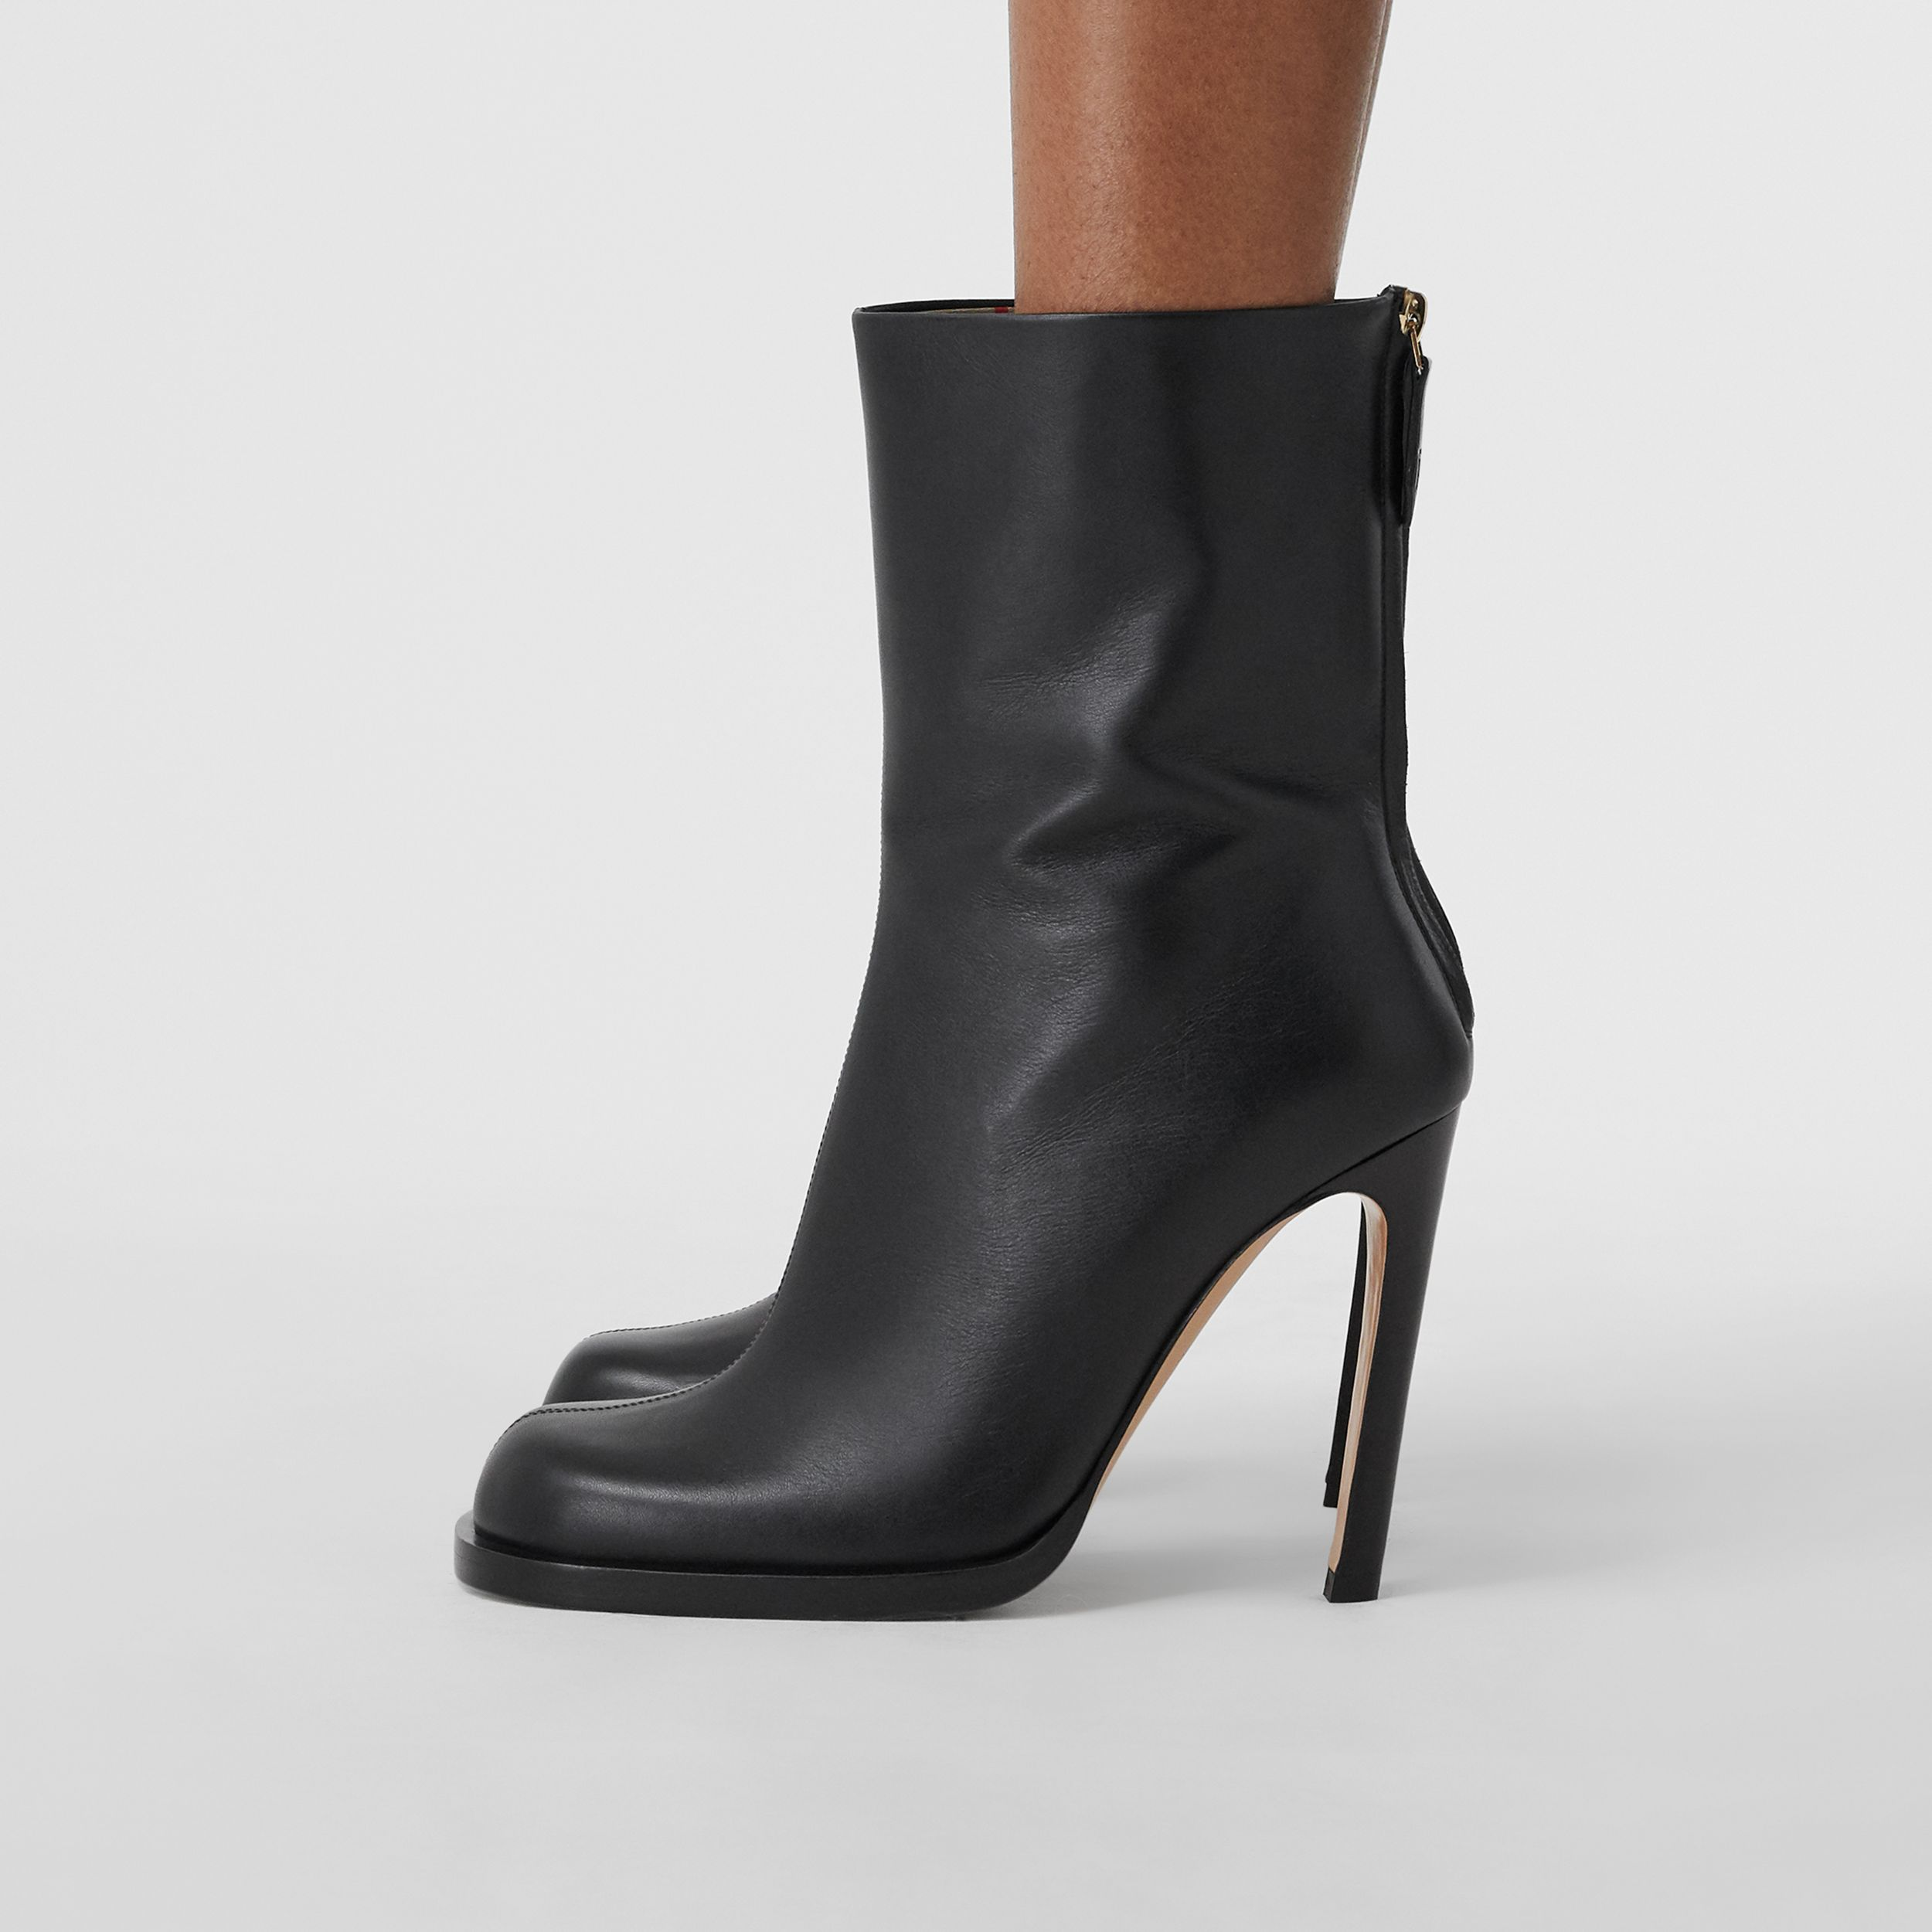 Vintage Check-lined Leather Ankle Boots in Black - Women | Burberry - 3